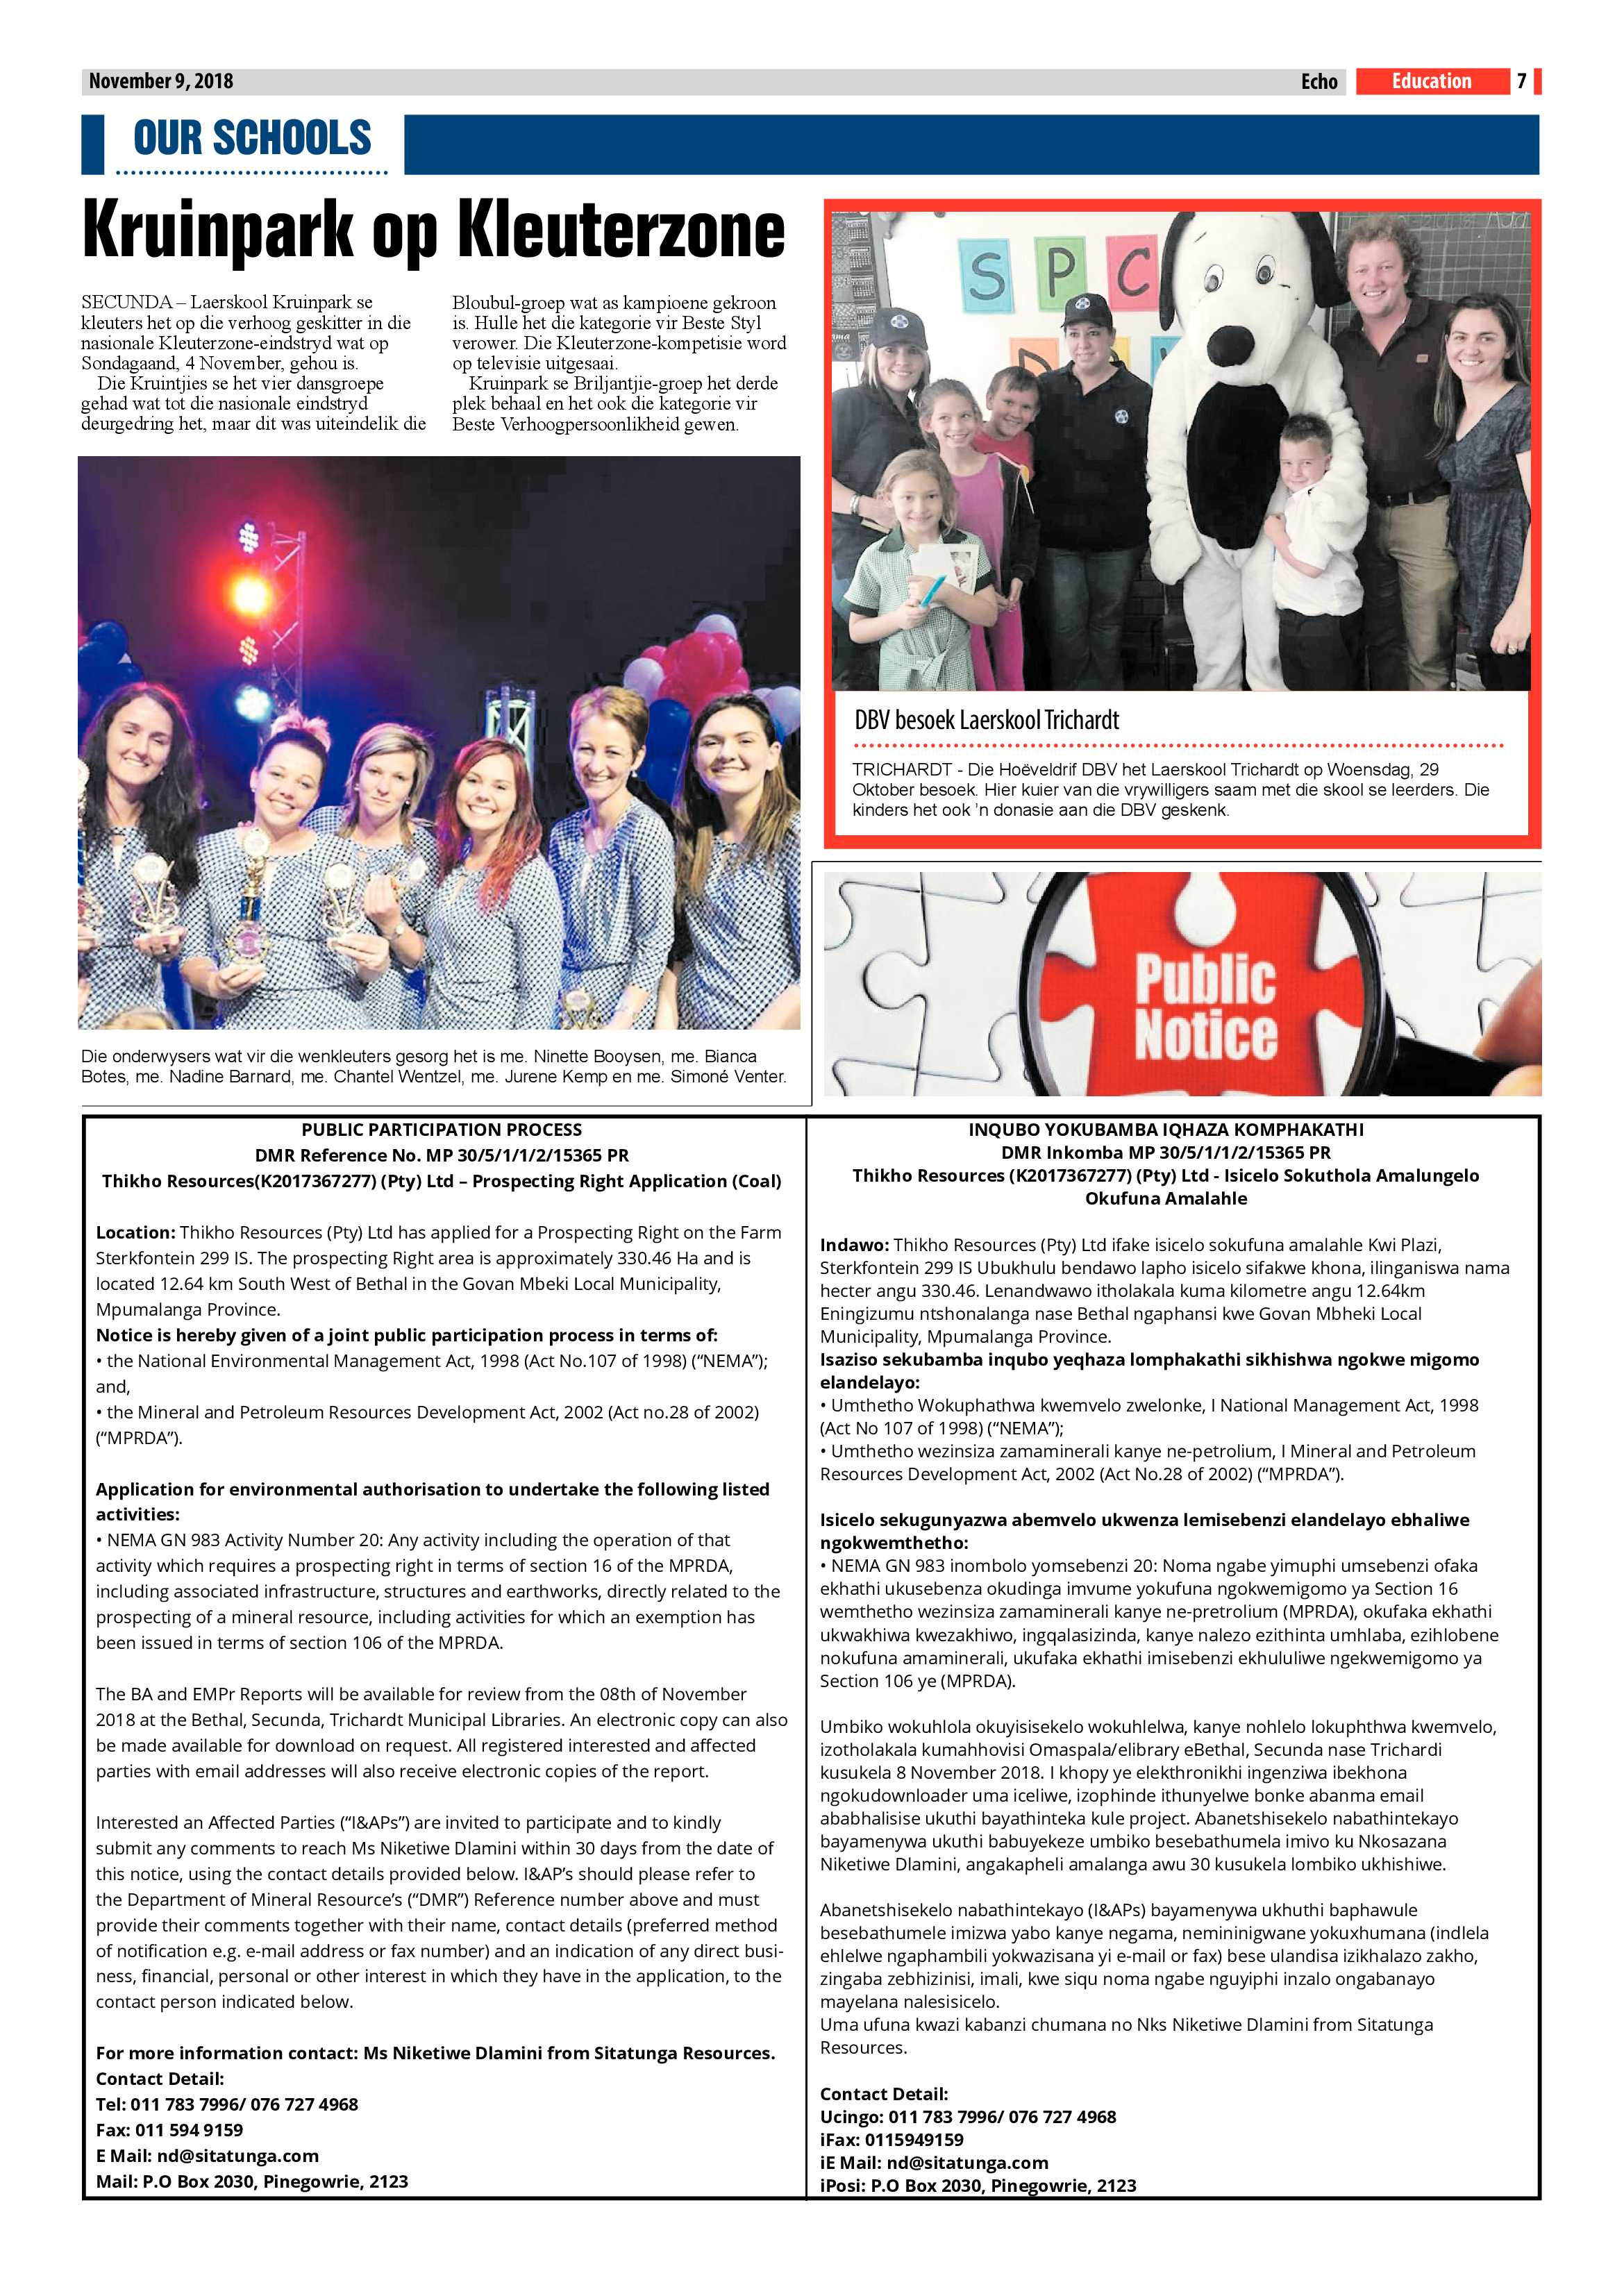 echo-9-november-2018-epapers-page-7